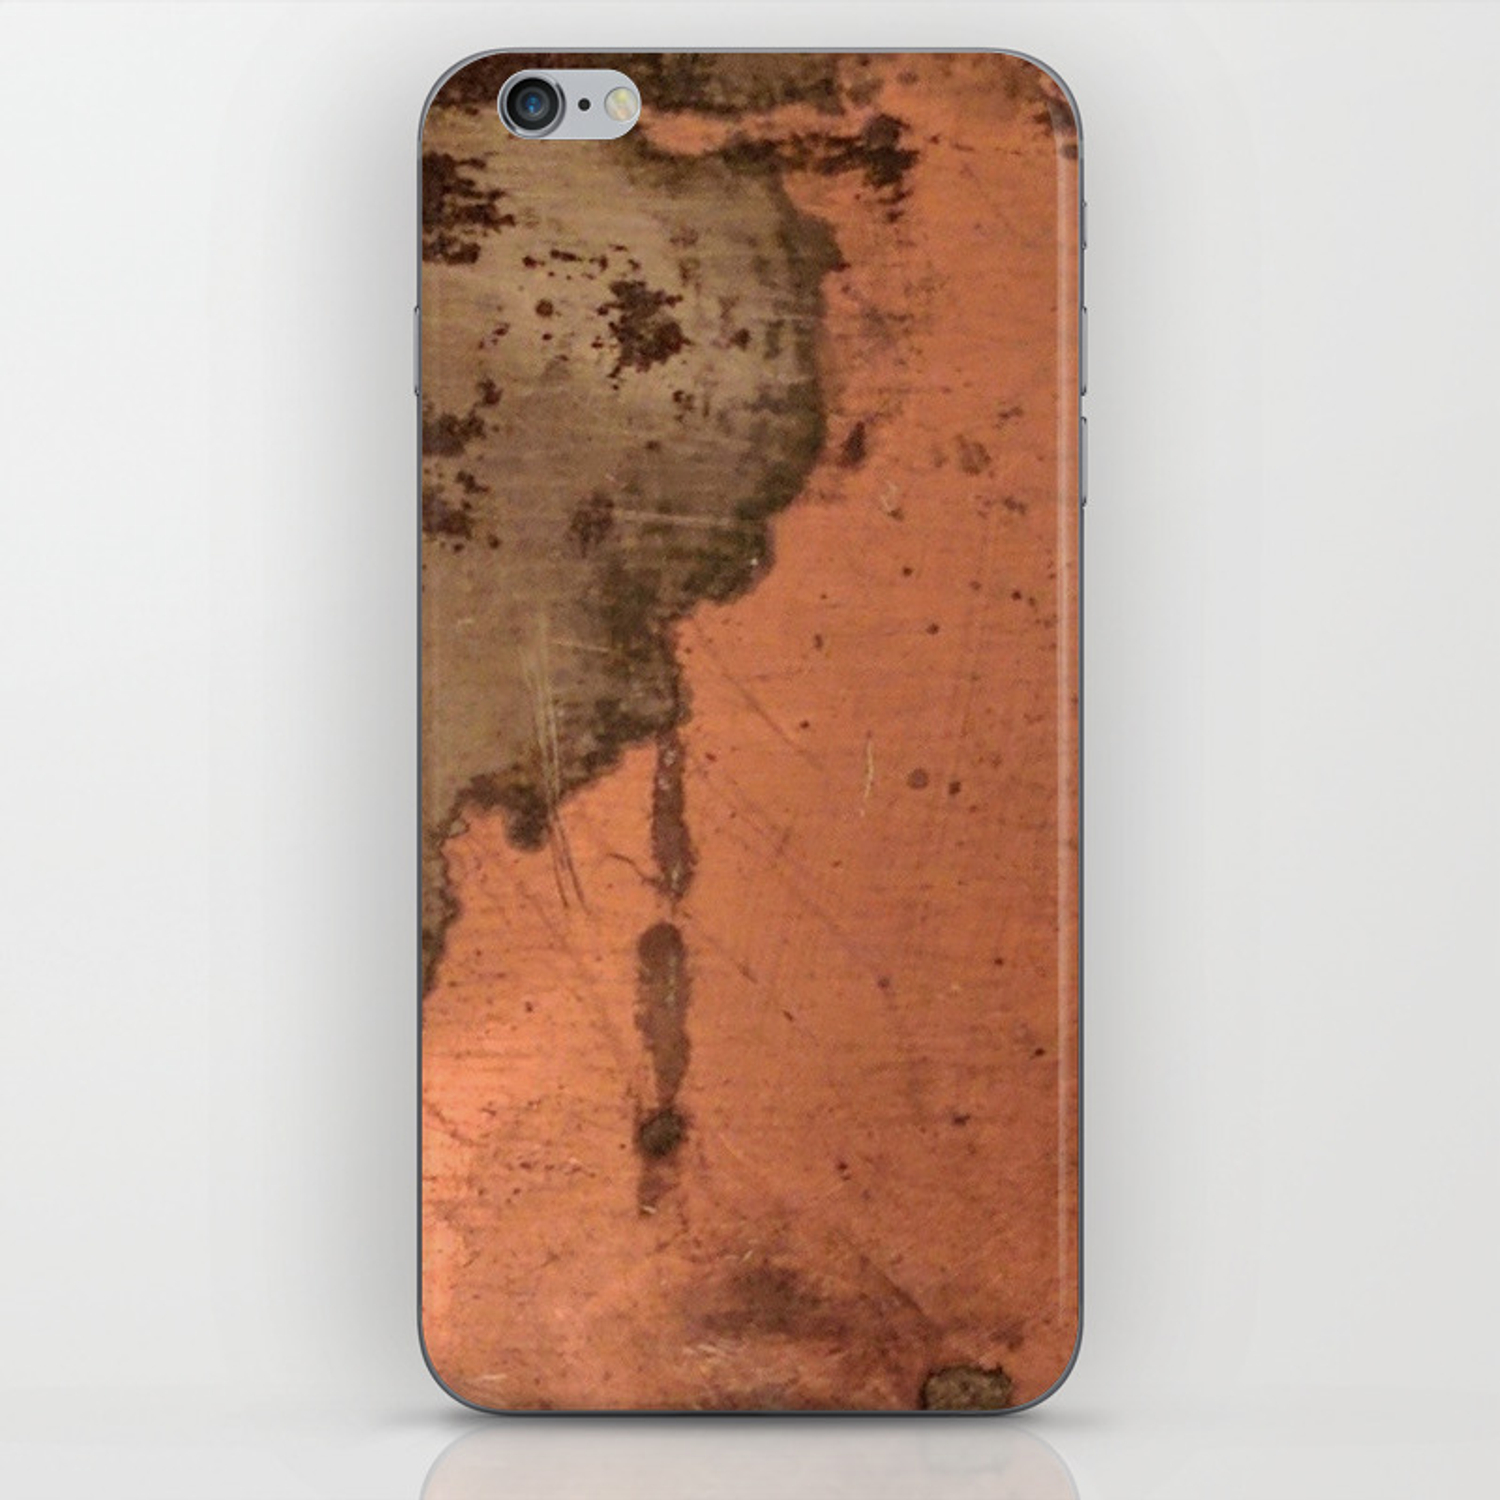 Tarnished Copper Rustic Decor Iphone Skin By Casaderustico